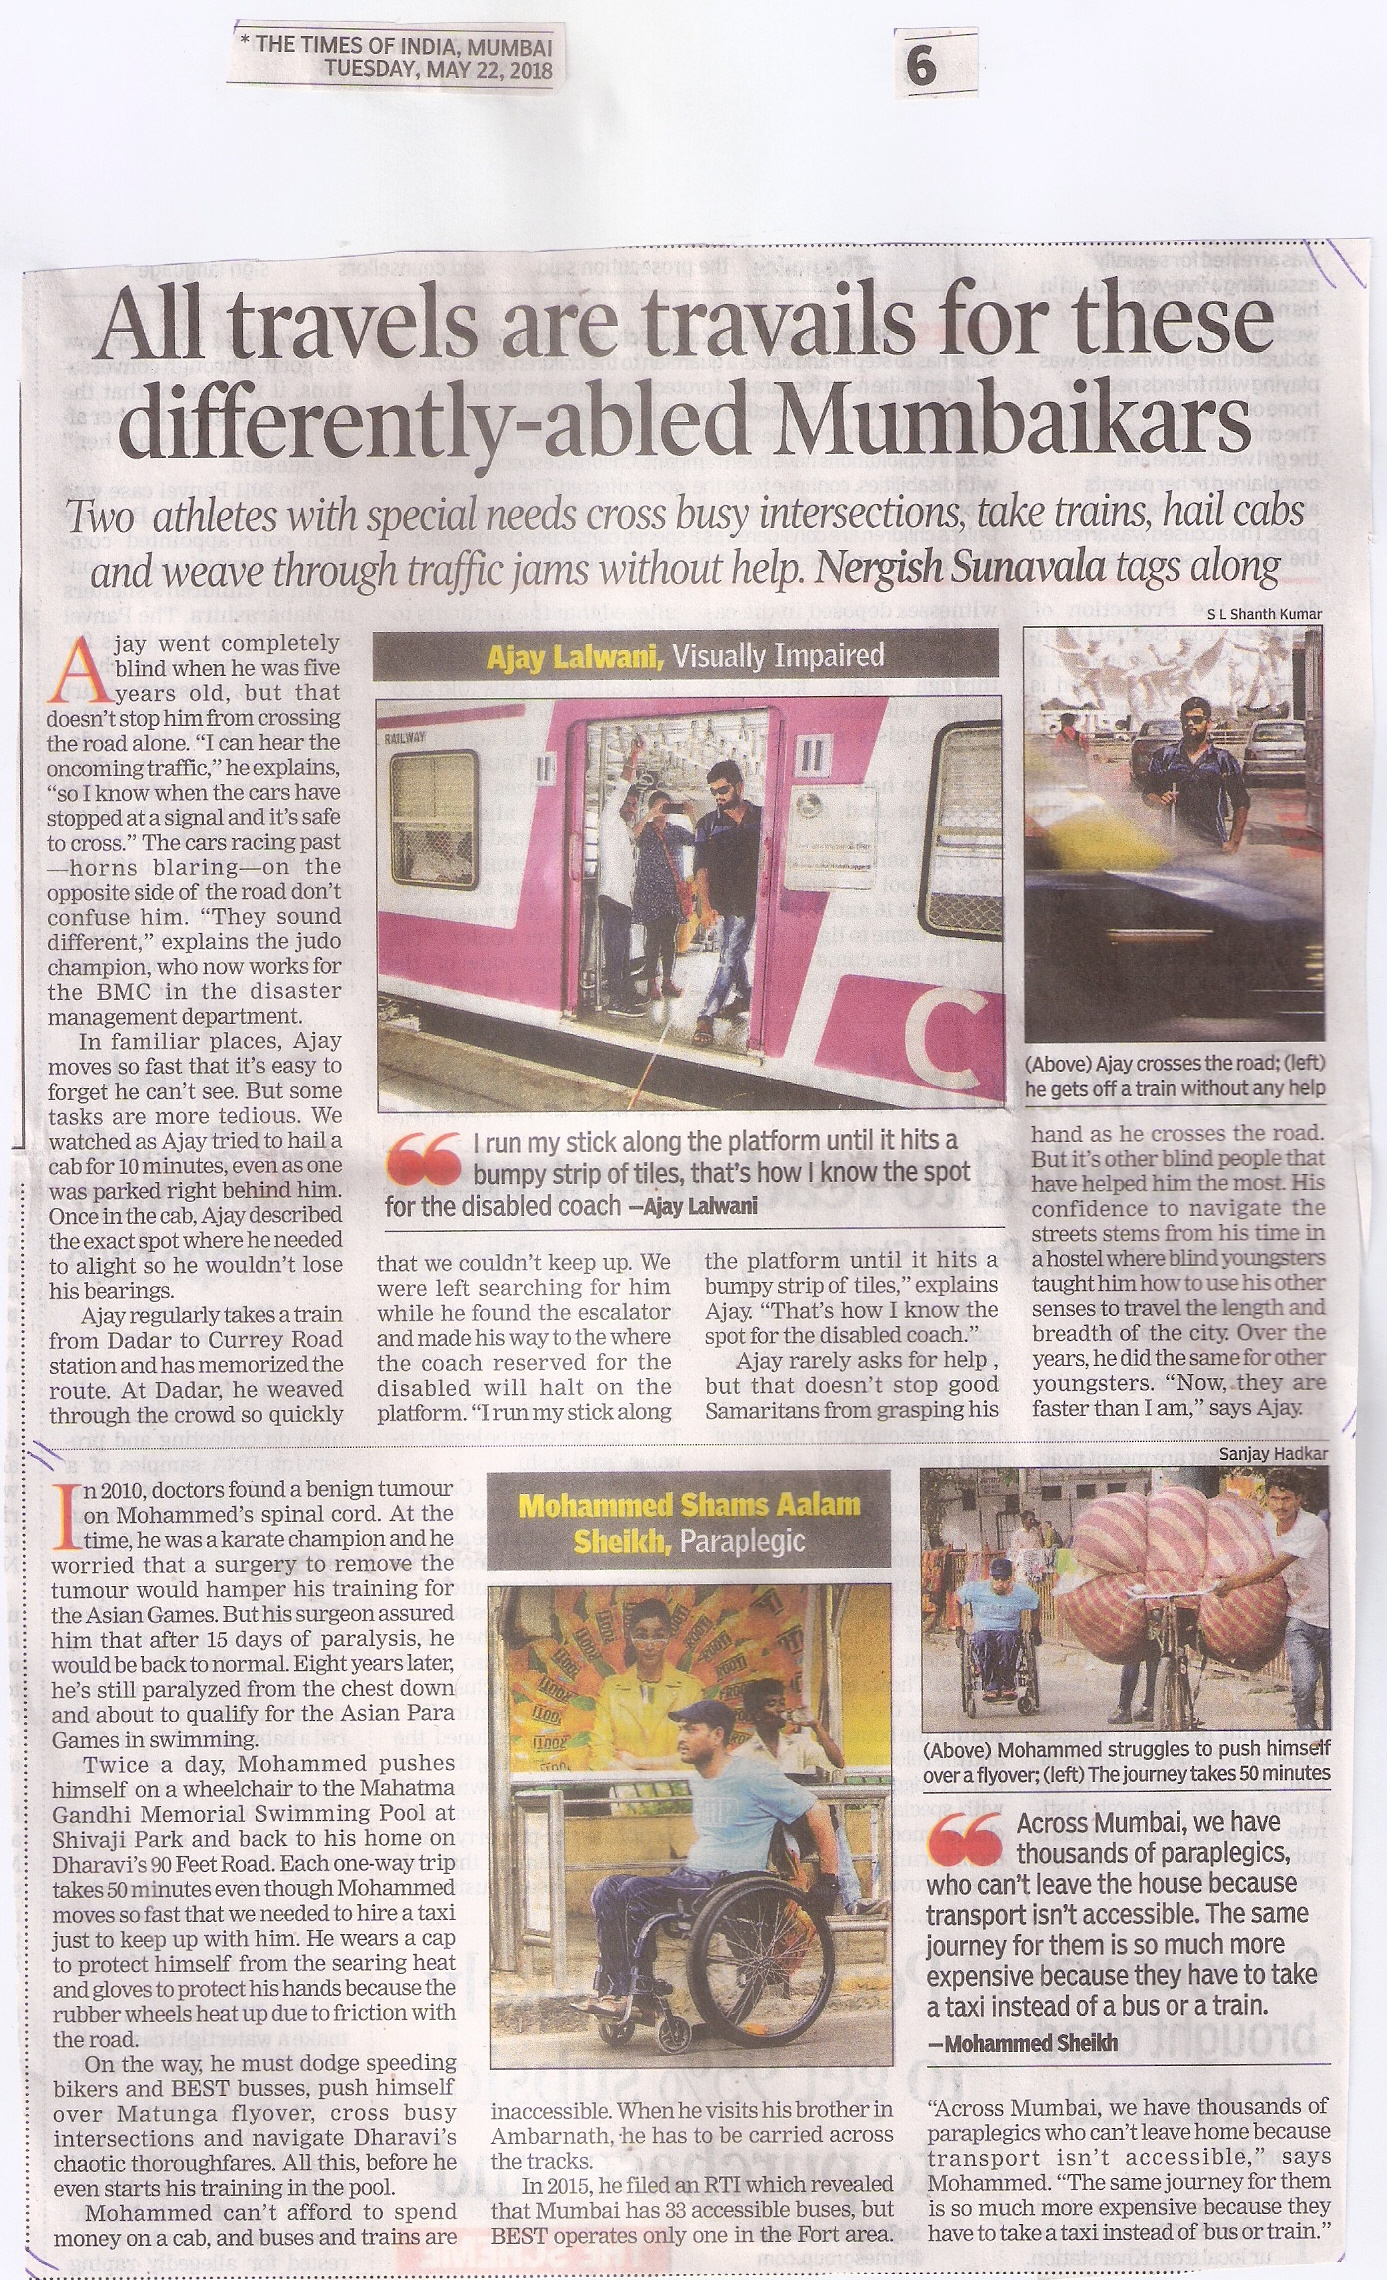 All travels are travails for these differently-abled Mumbaikars (TOI Tues22May18pg.6)